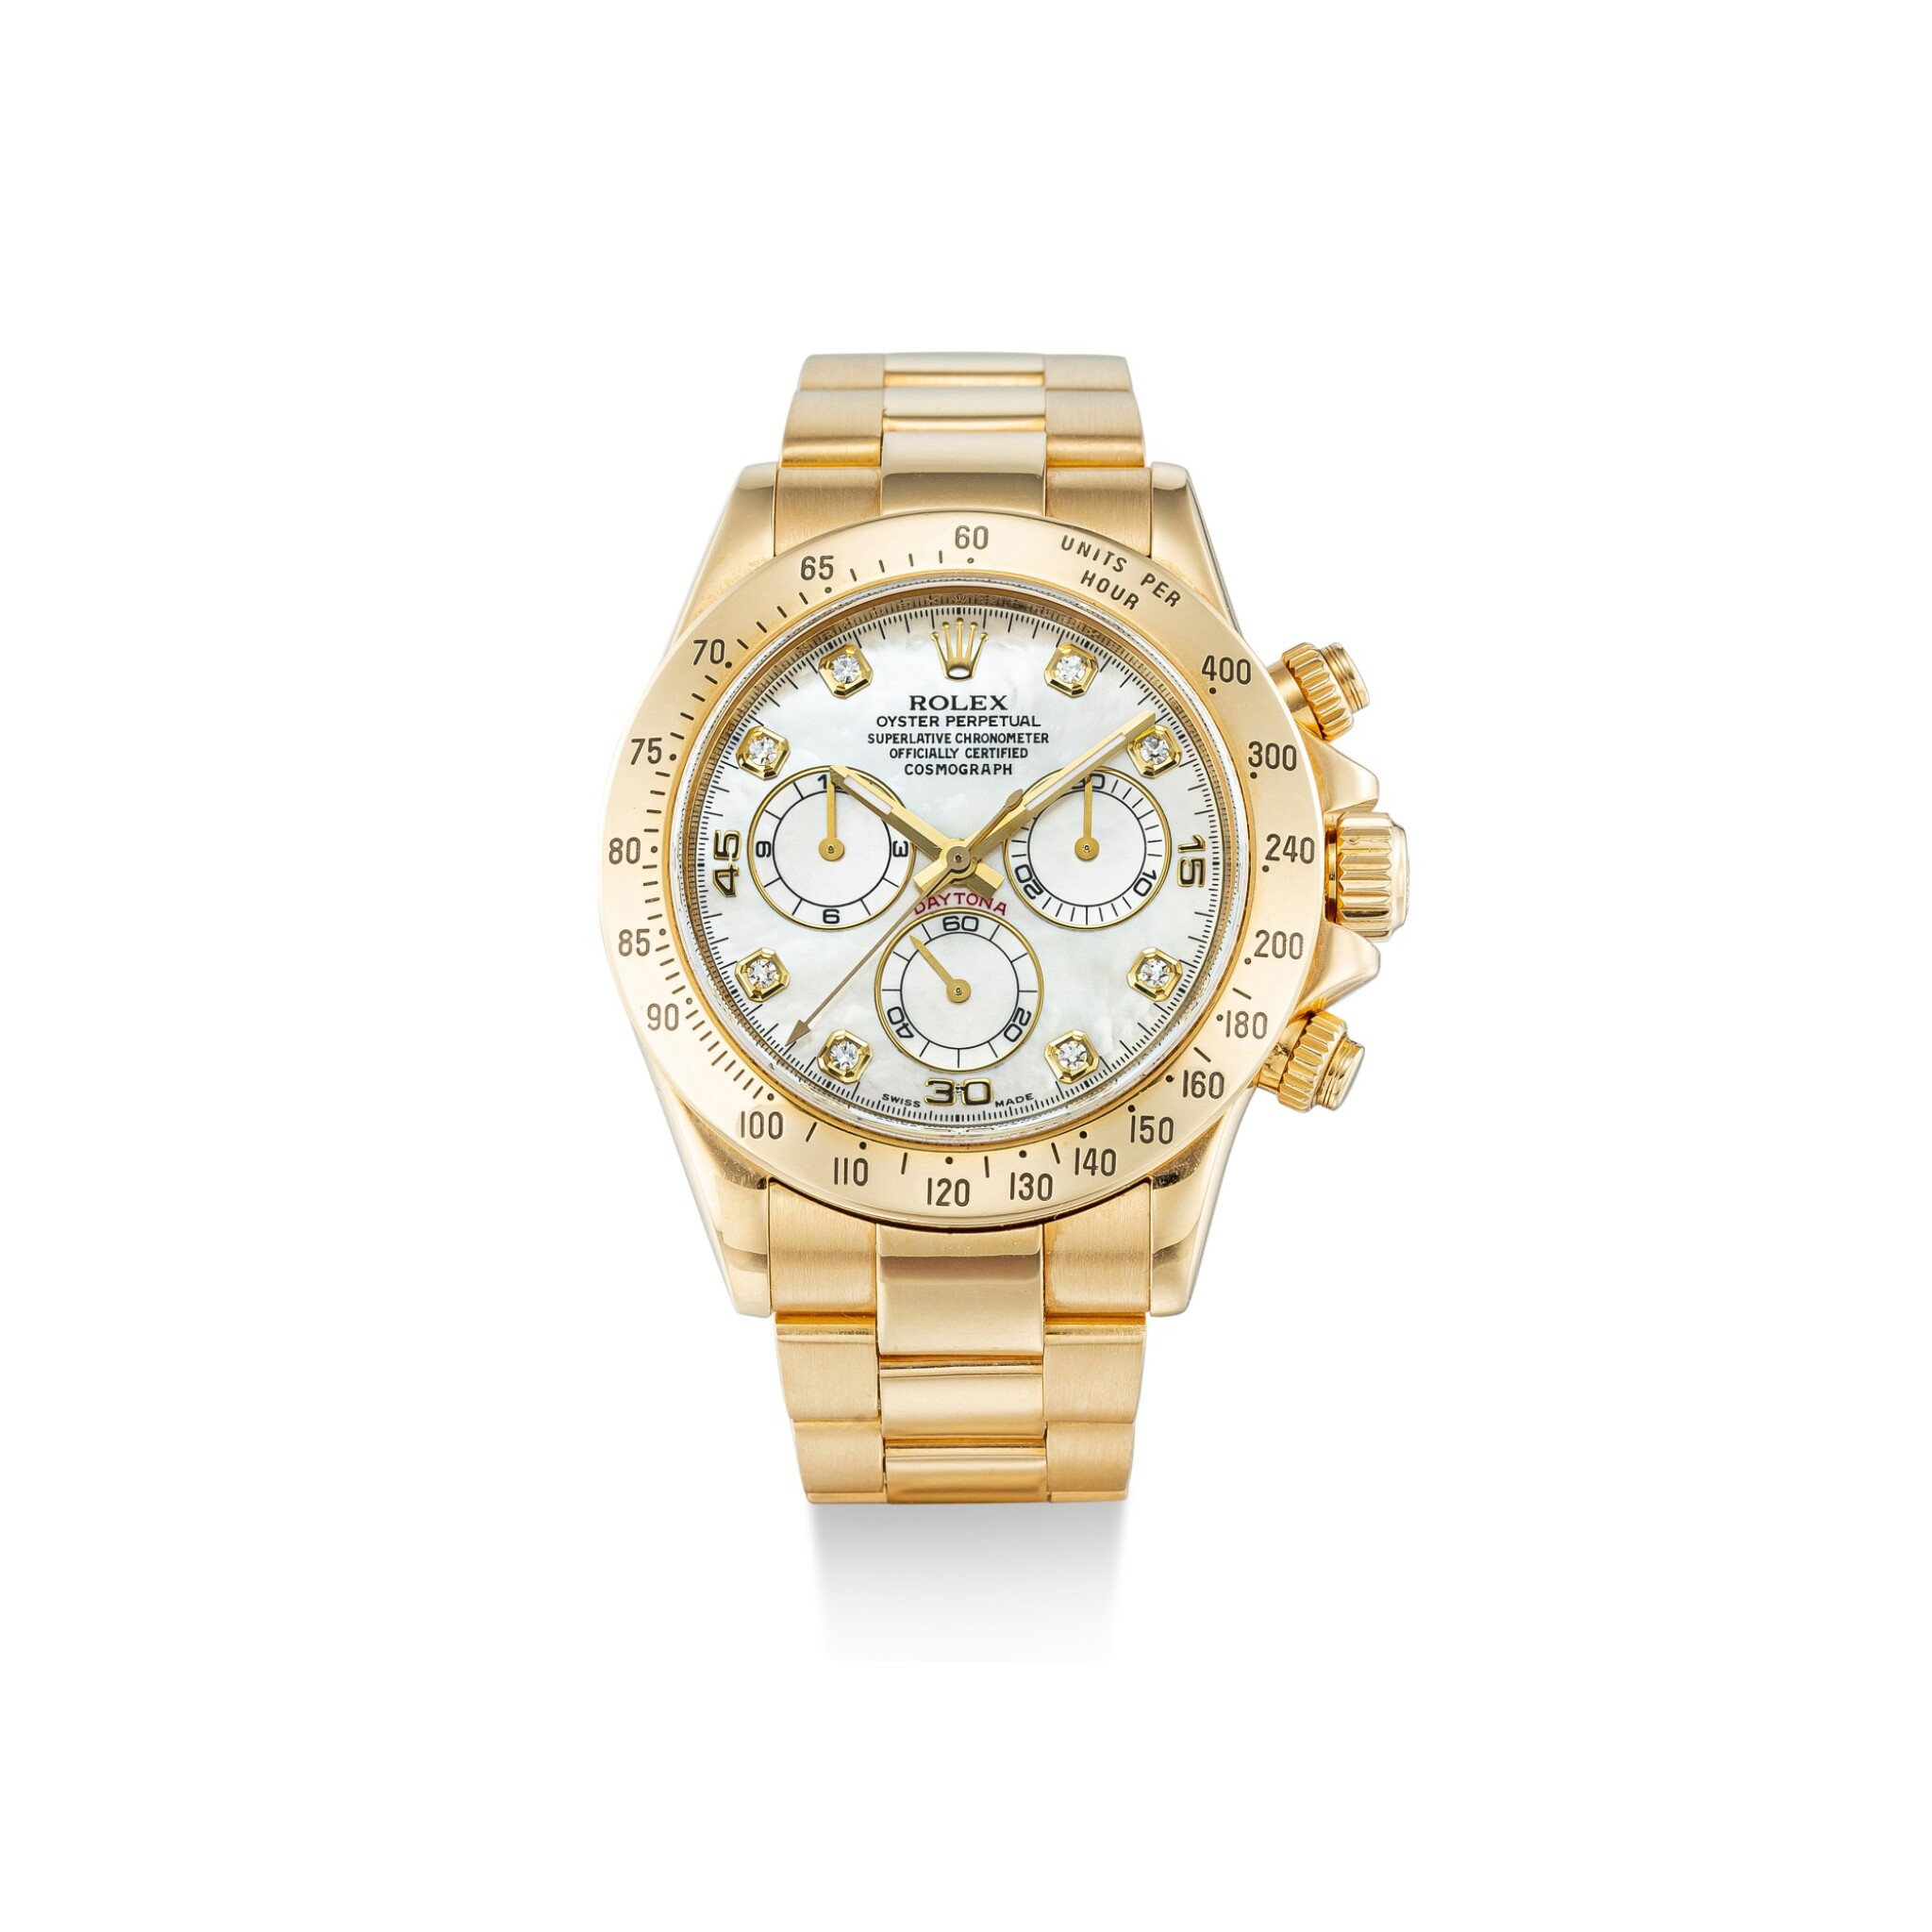 View full screen - View 1 of Lot 104. ROLEX | COSMOGRAPH DAYTONA, REFERENCE 116528, A YELLOW GOLD AND DIAMOND-SET CHRONOGRAPH WRISTWATCH WITH MOTHER-OF-PEARL DIAL AND BRACELET, CIRCA 2010.